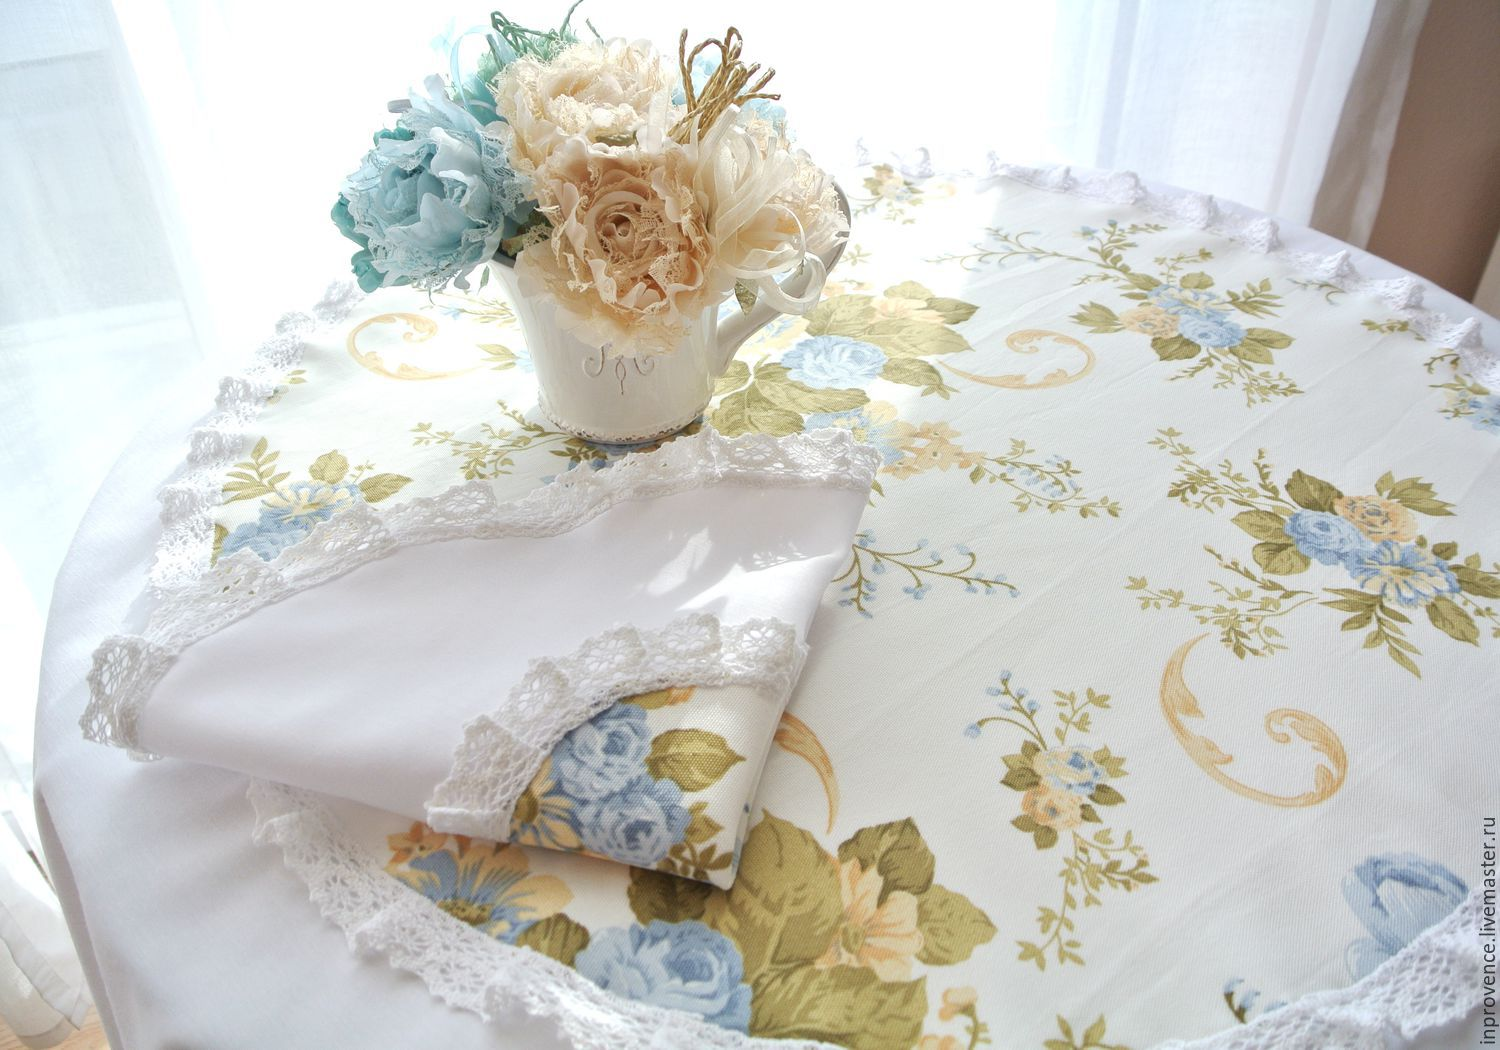 Tablecloth Set table linen in the style of Shabby Chic, Vintage. Tablecloth handmade